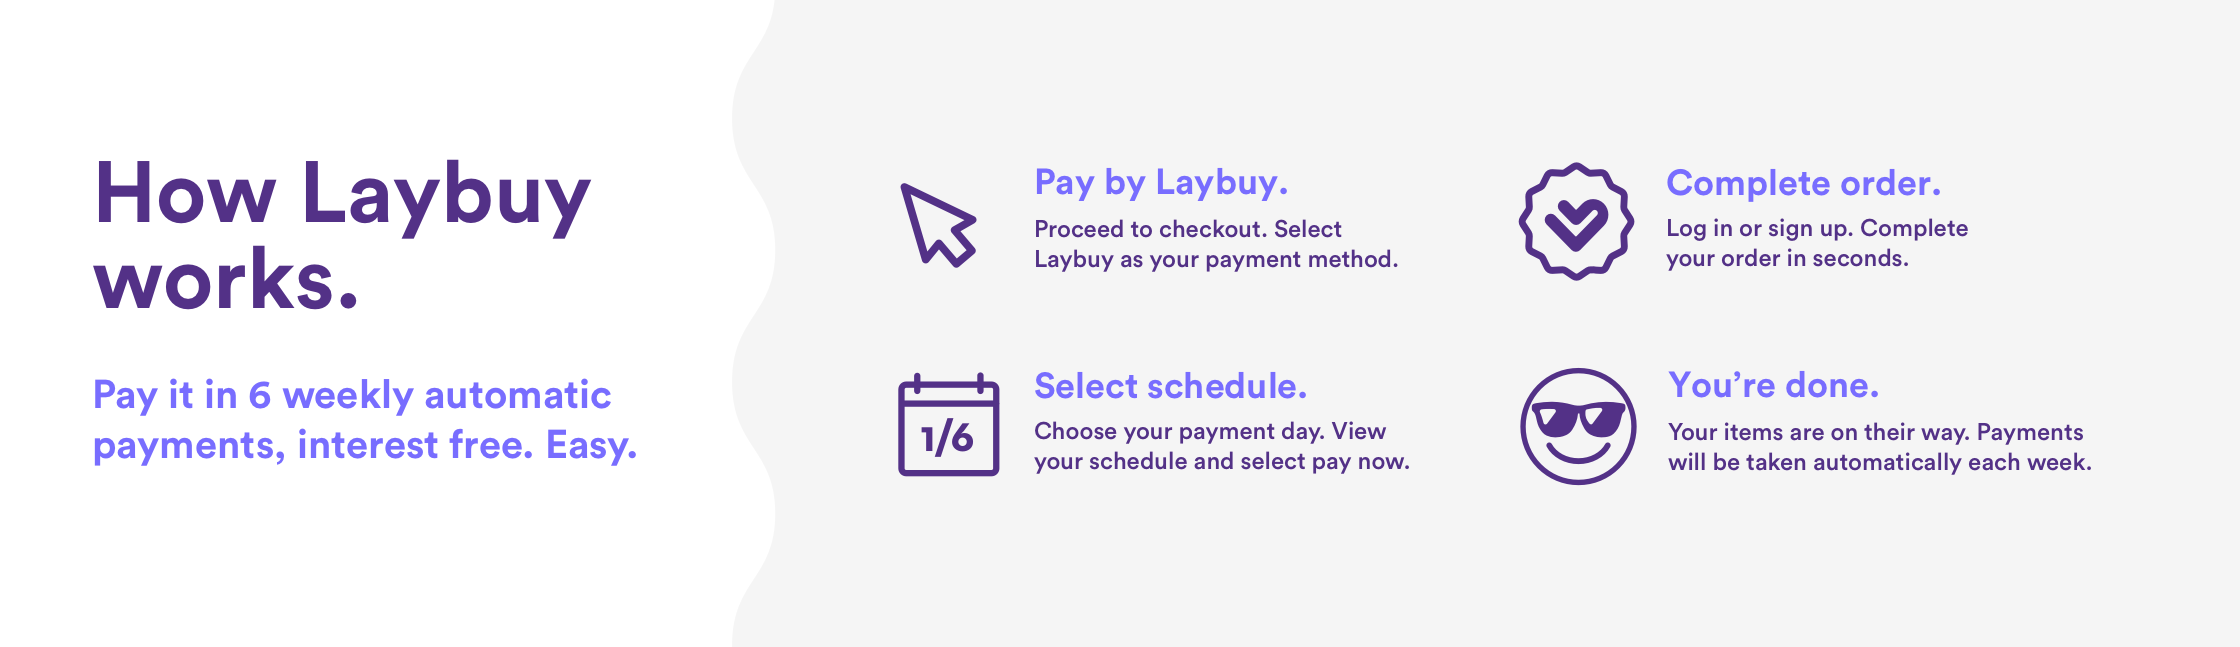 Laybuy Payments